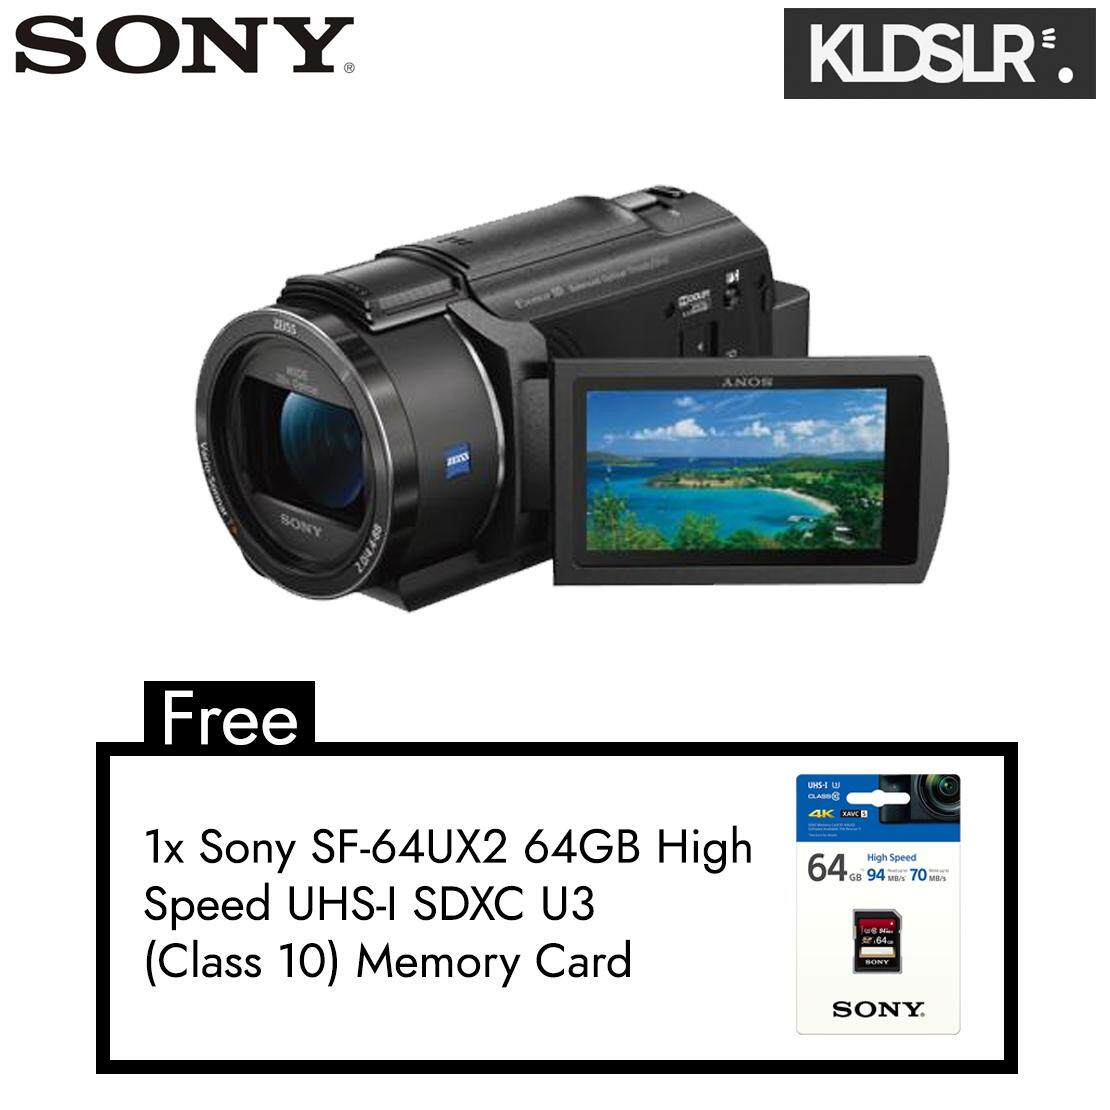 Sony Handycam FDR-AX40 Digital 4K Video Camera Recorder